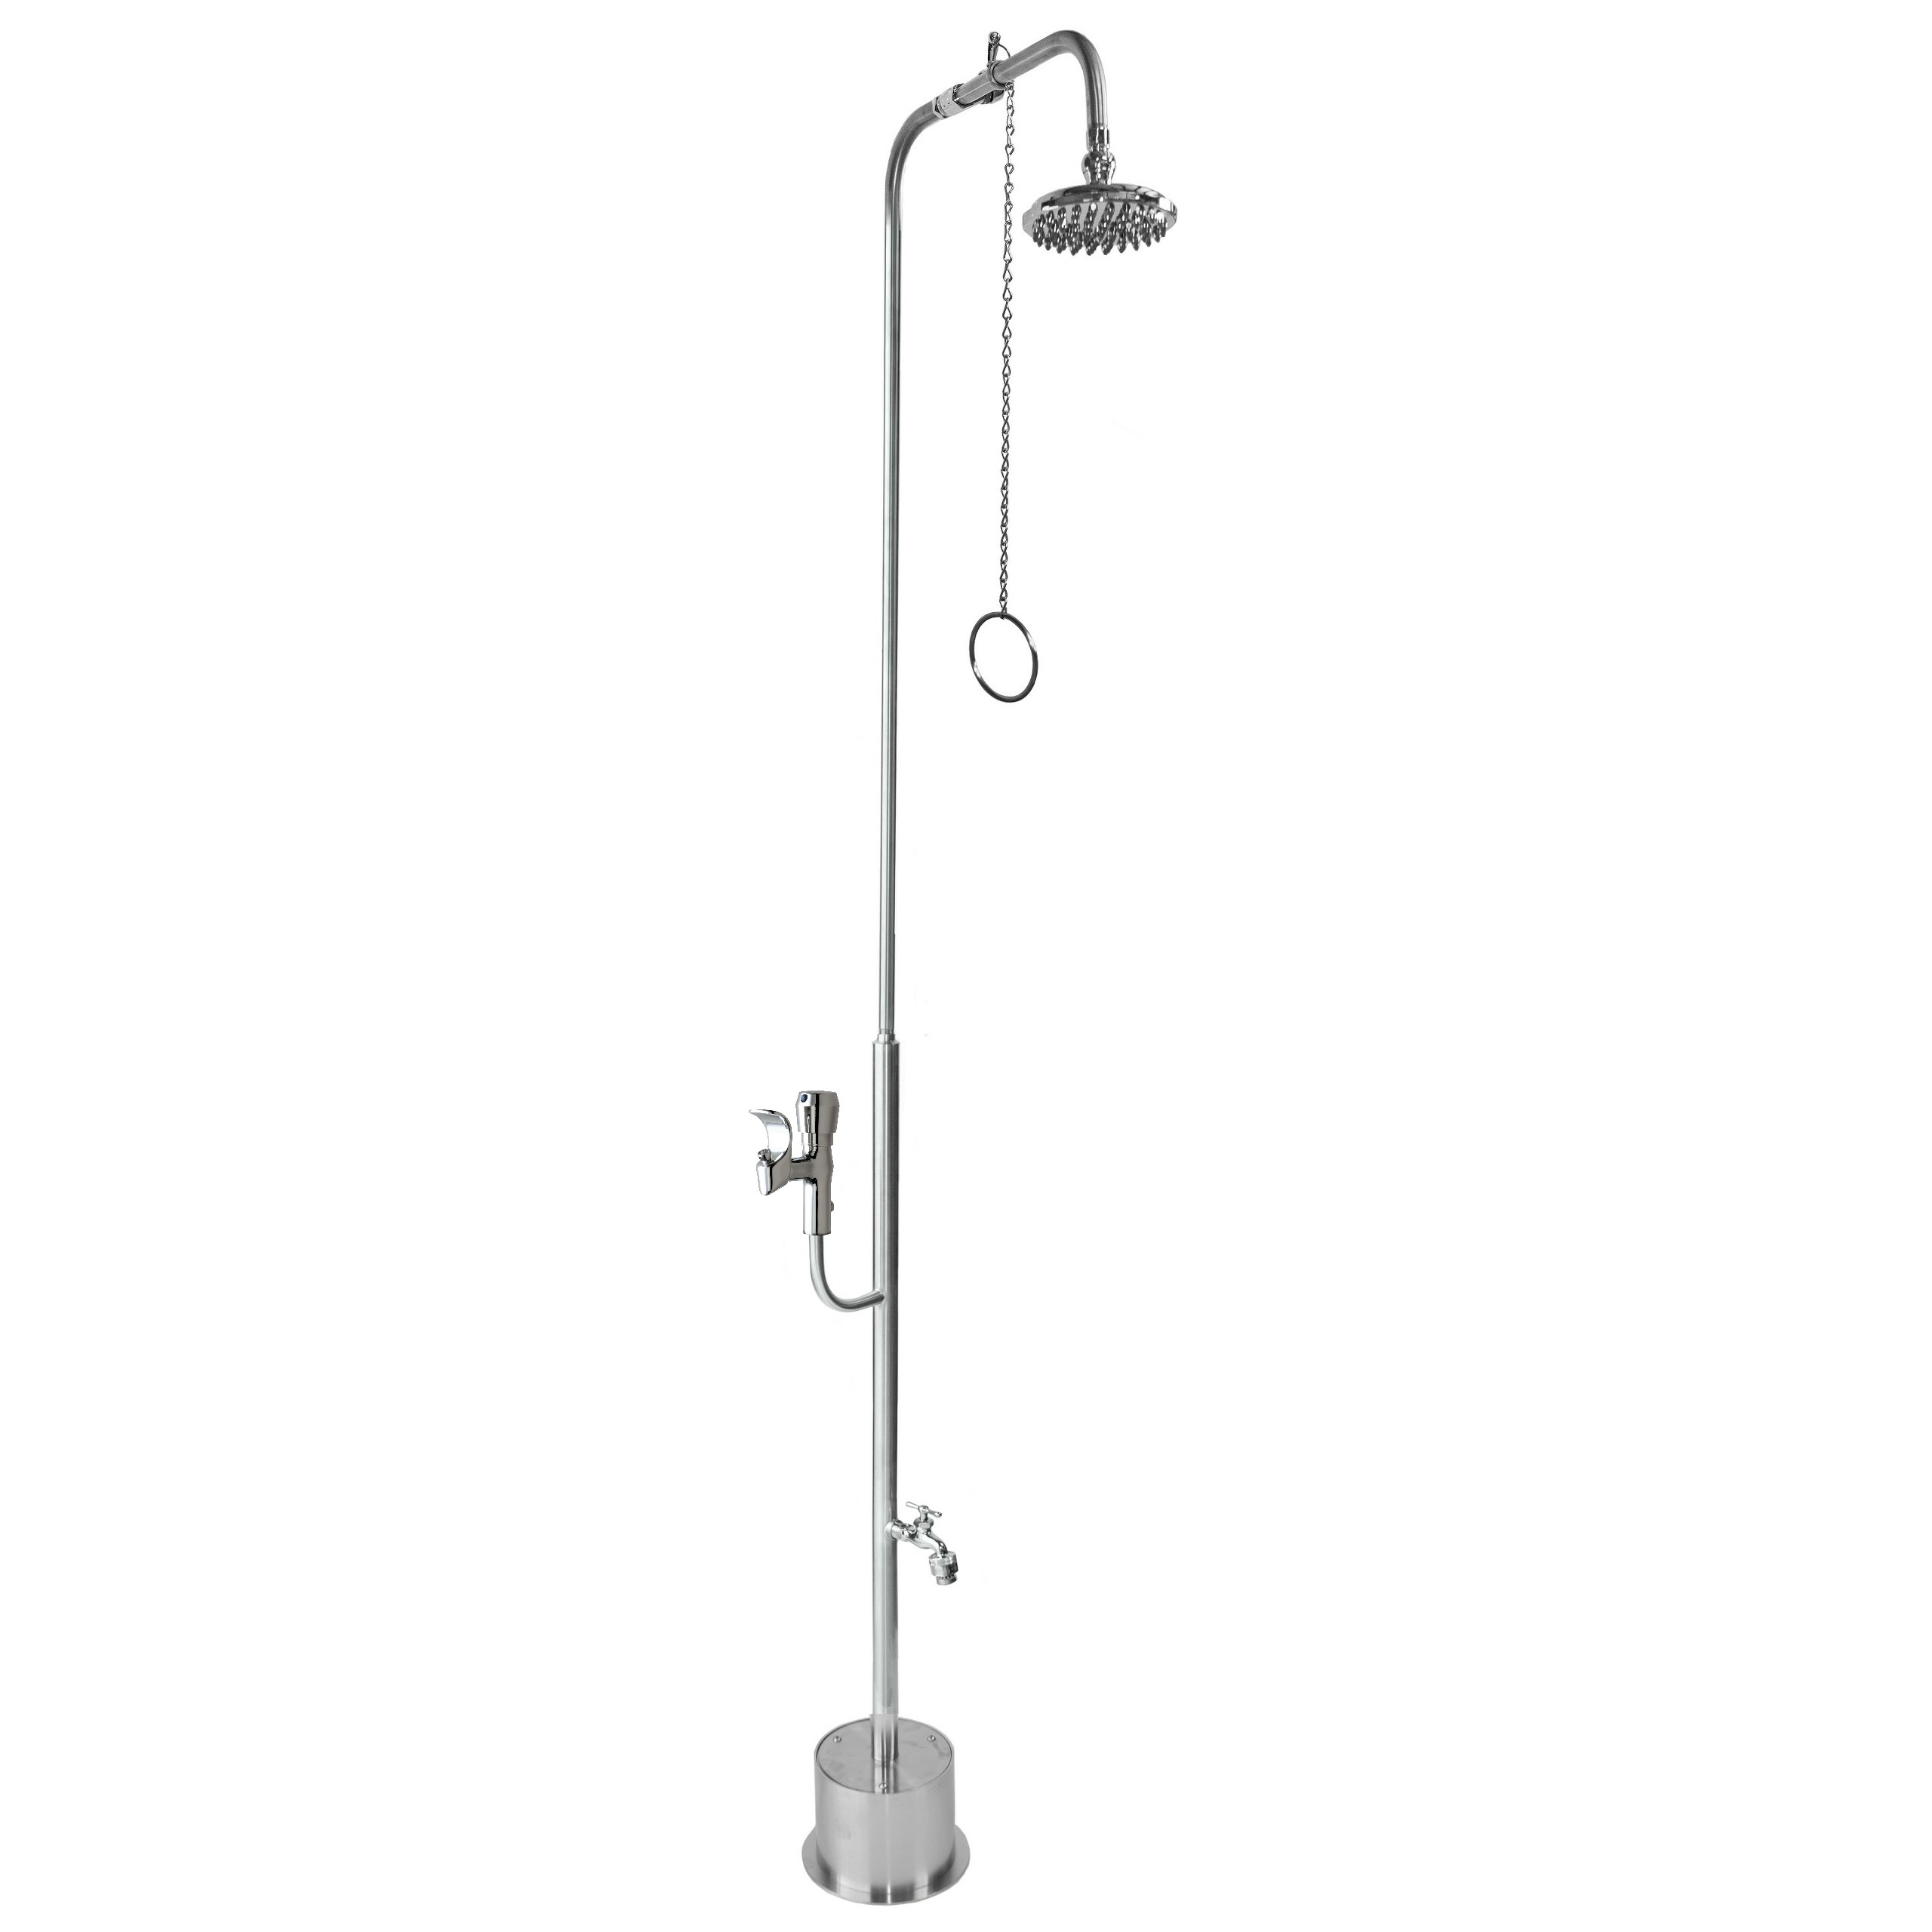 Outdoor Shower Company PSDF-1500-PCV-ADA Free Standing Single Supply Shower